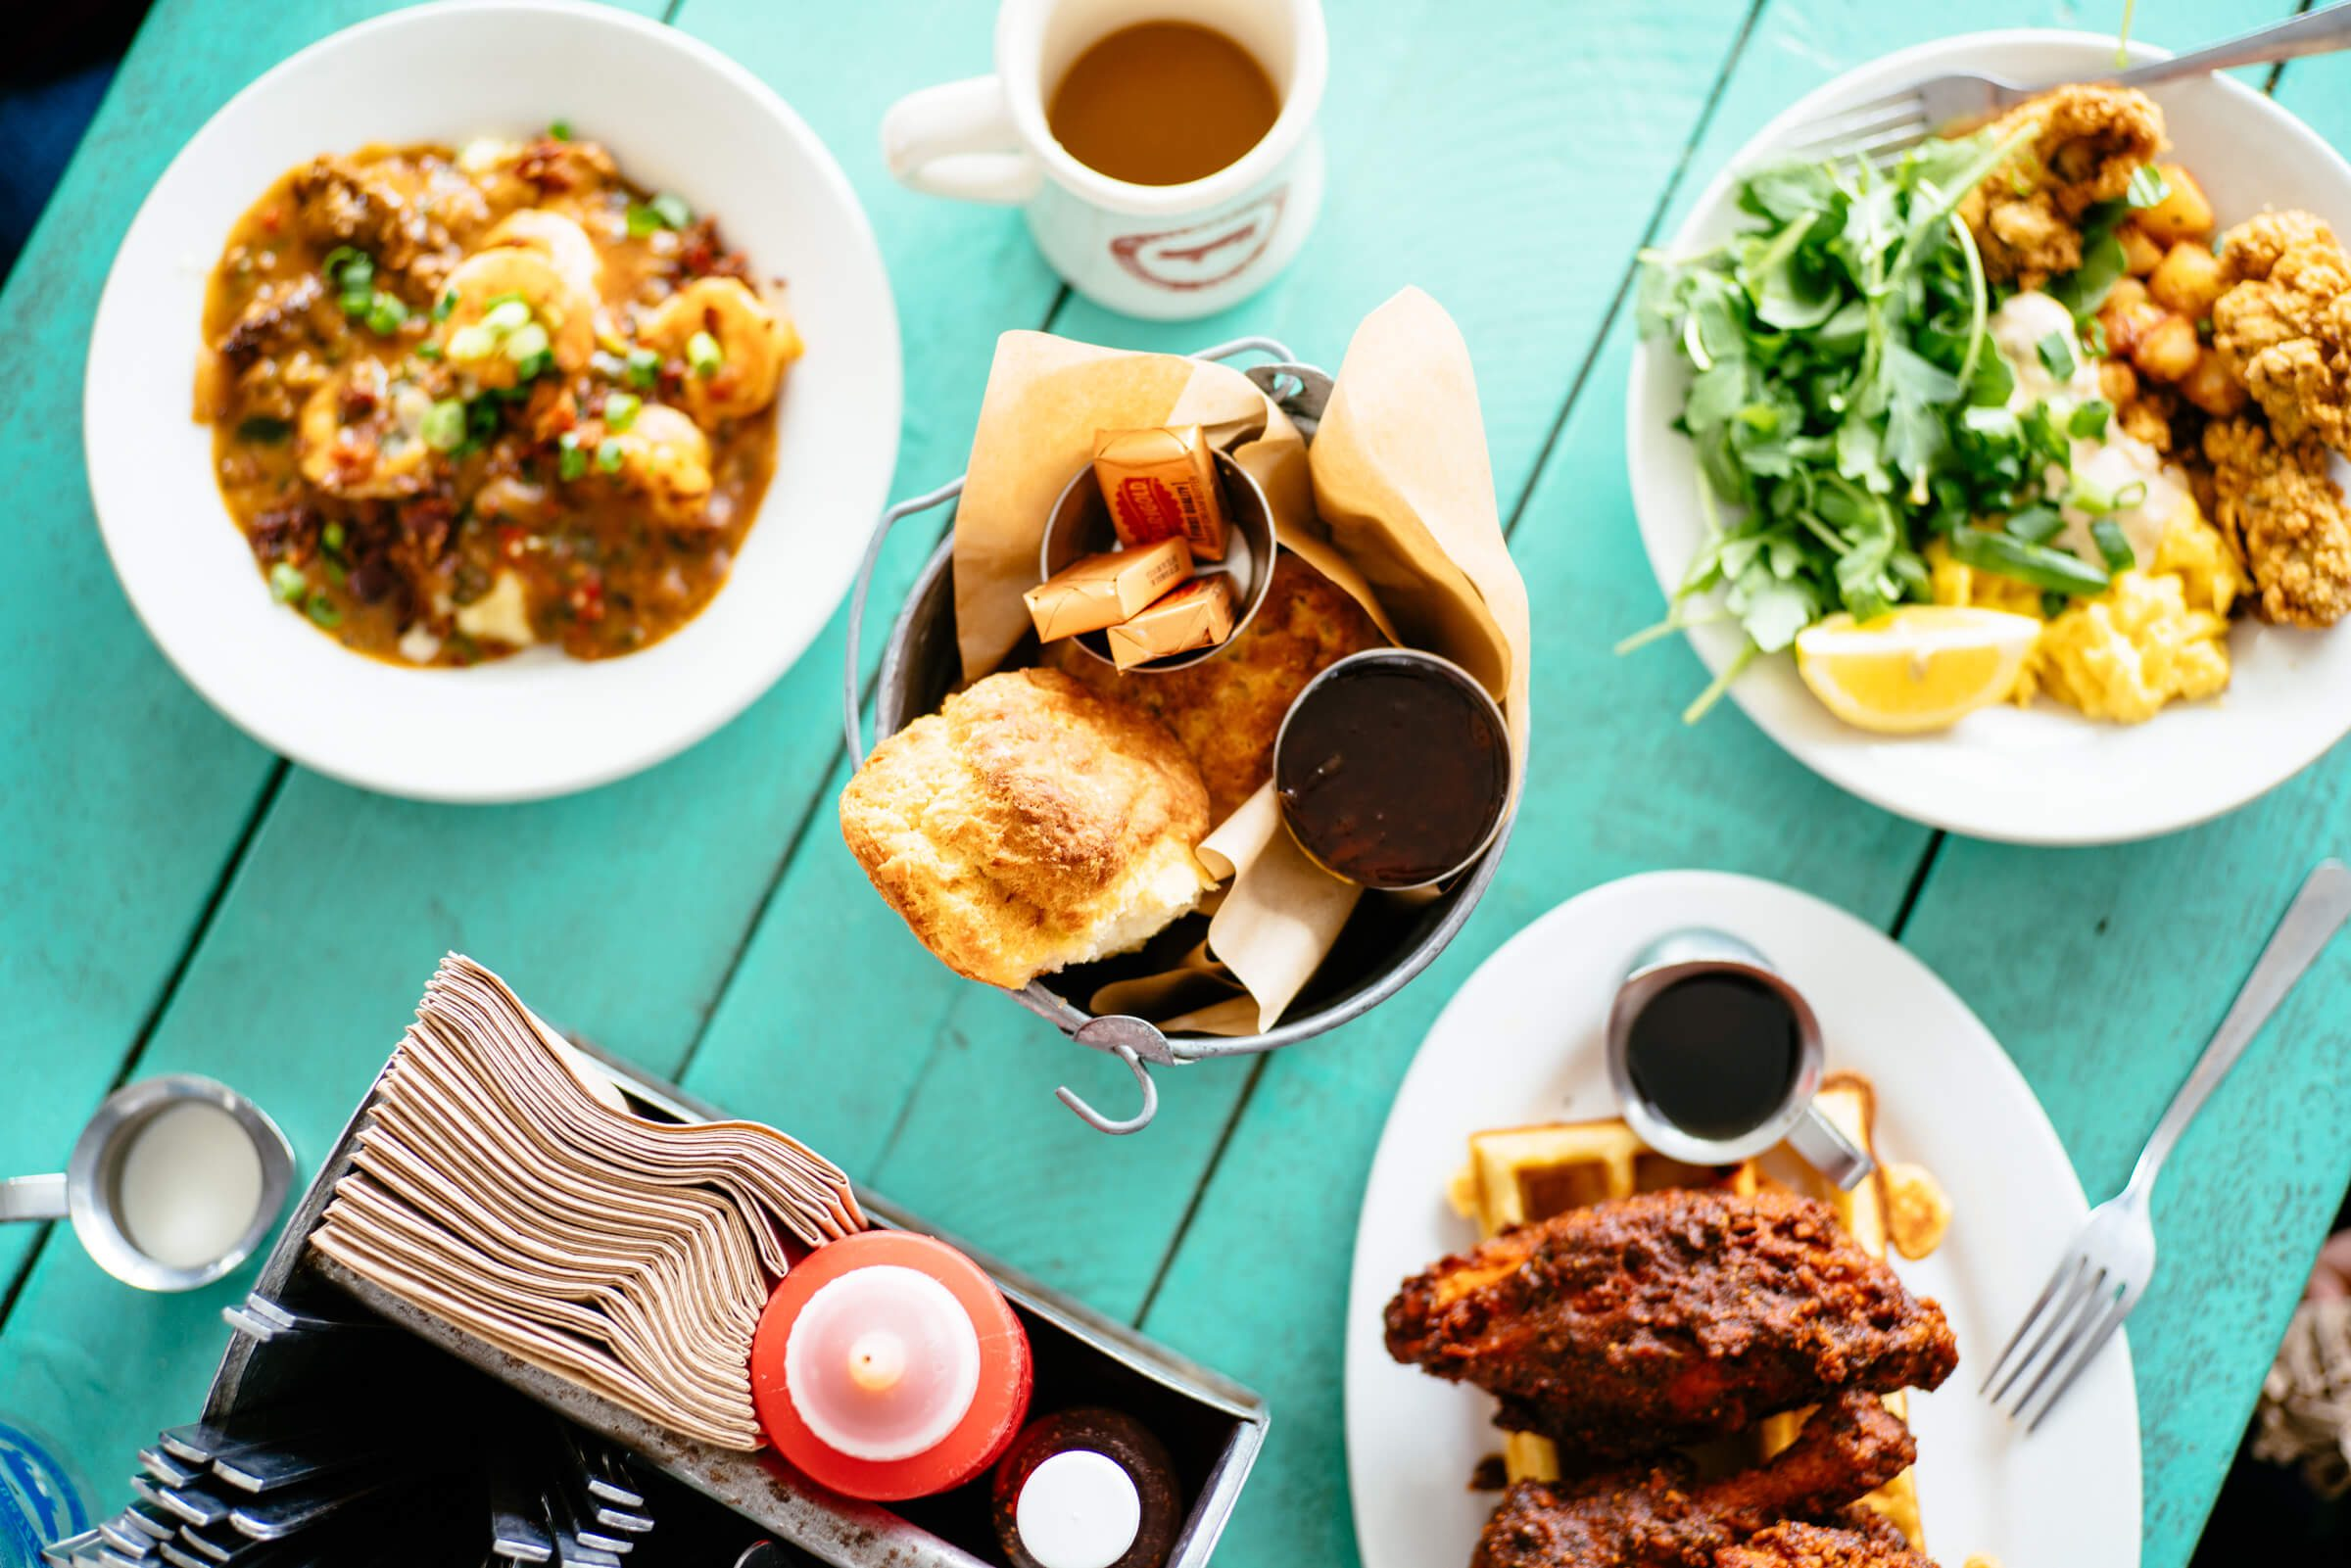 The Fremont Diner in Sonoma is the best place for brunch in Sonoma we've found so far